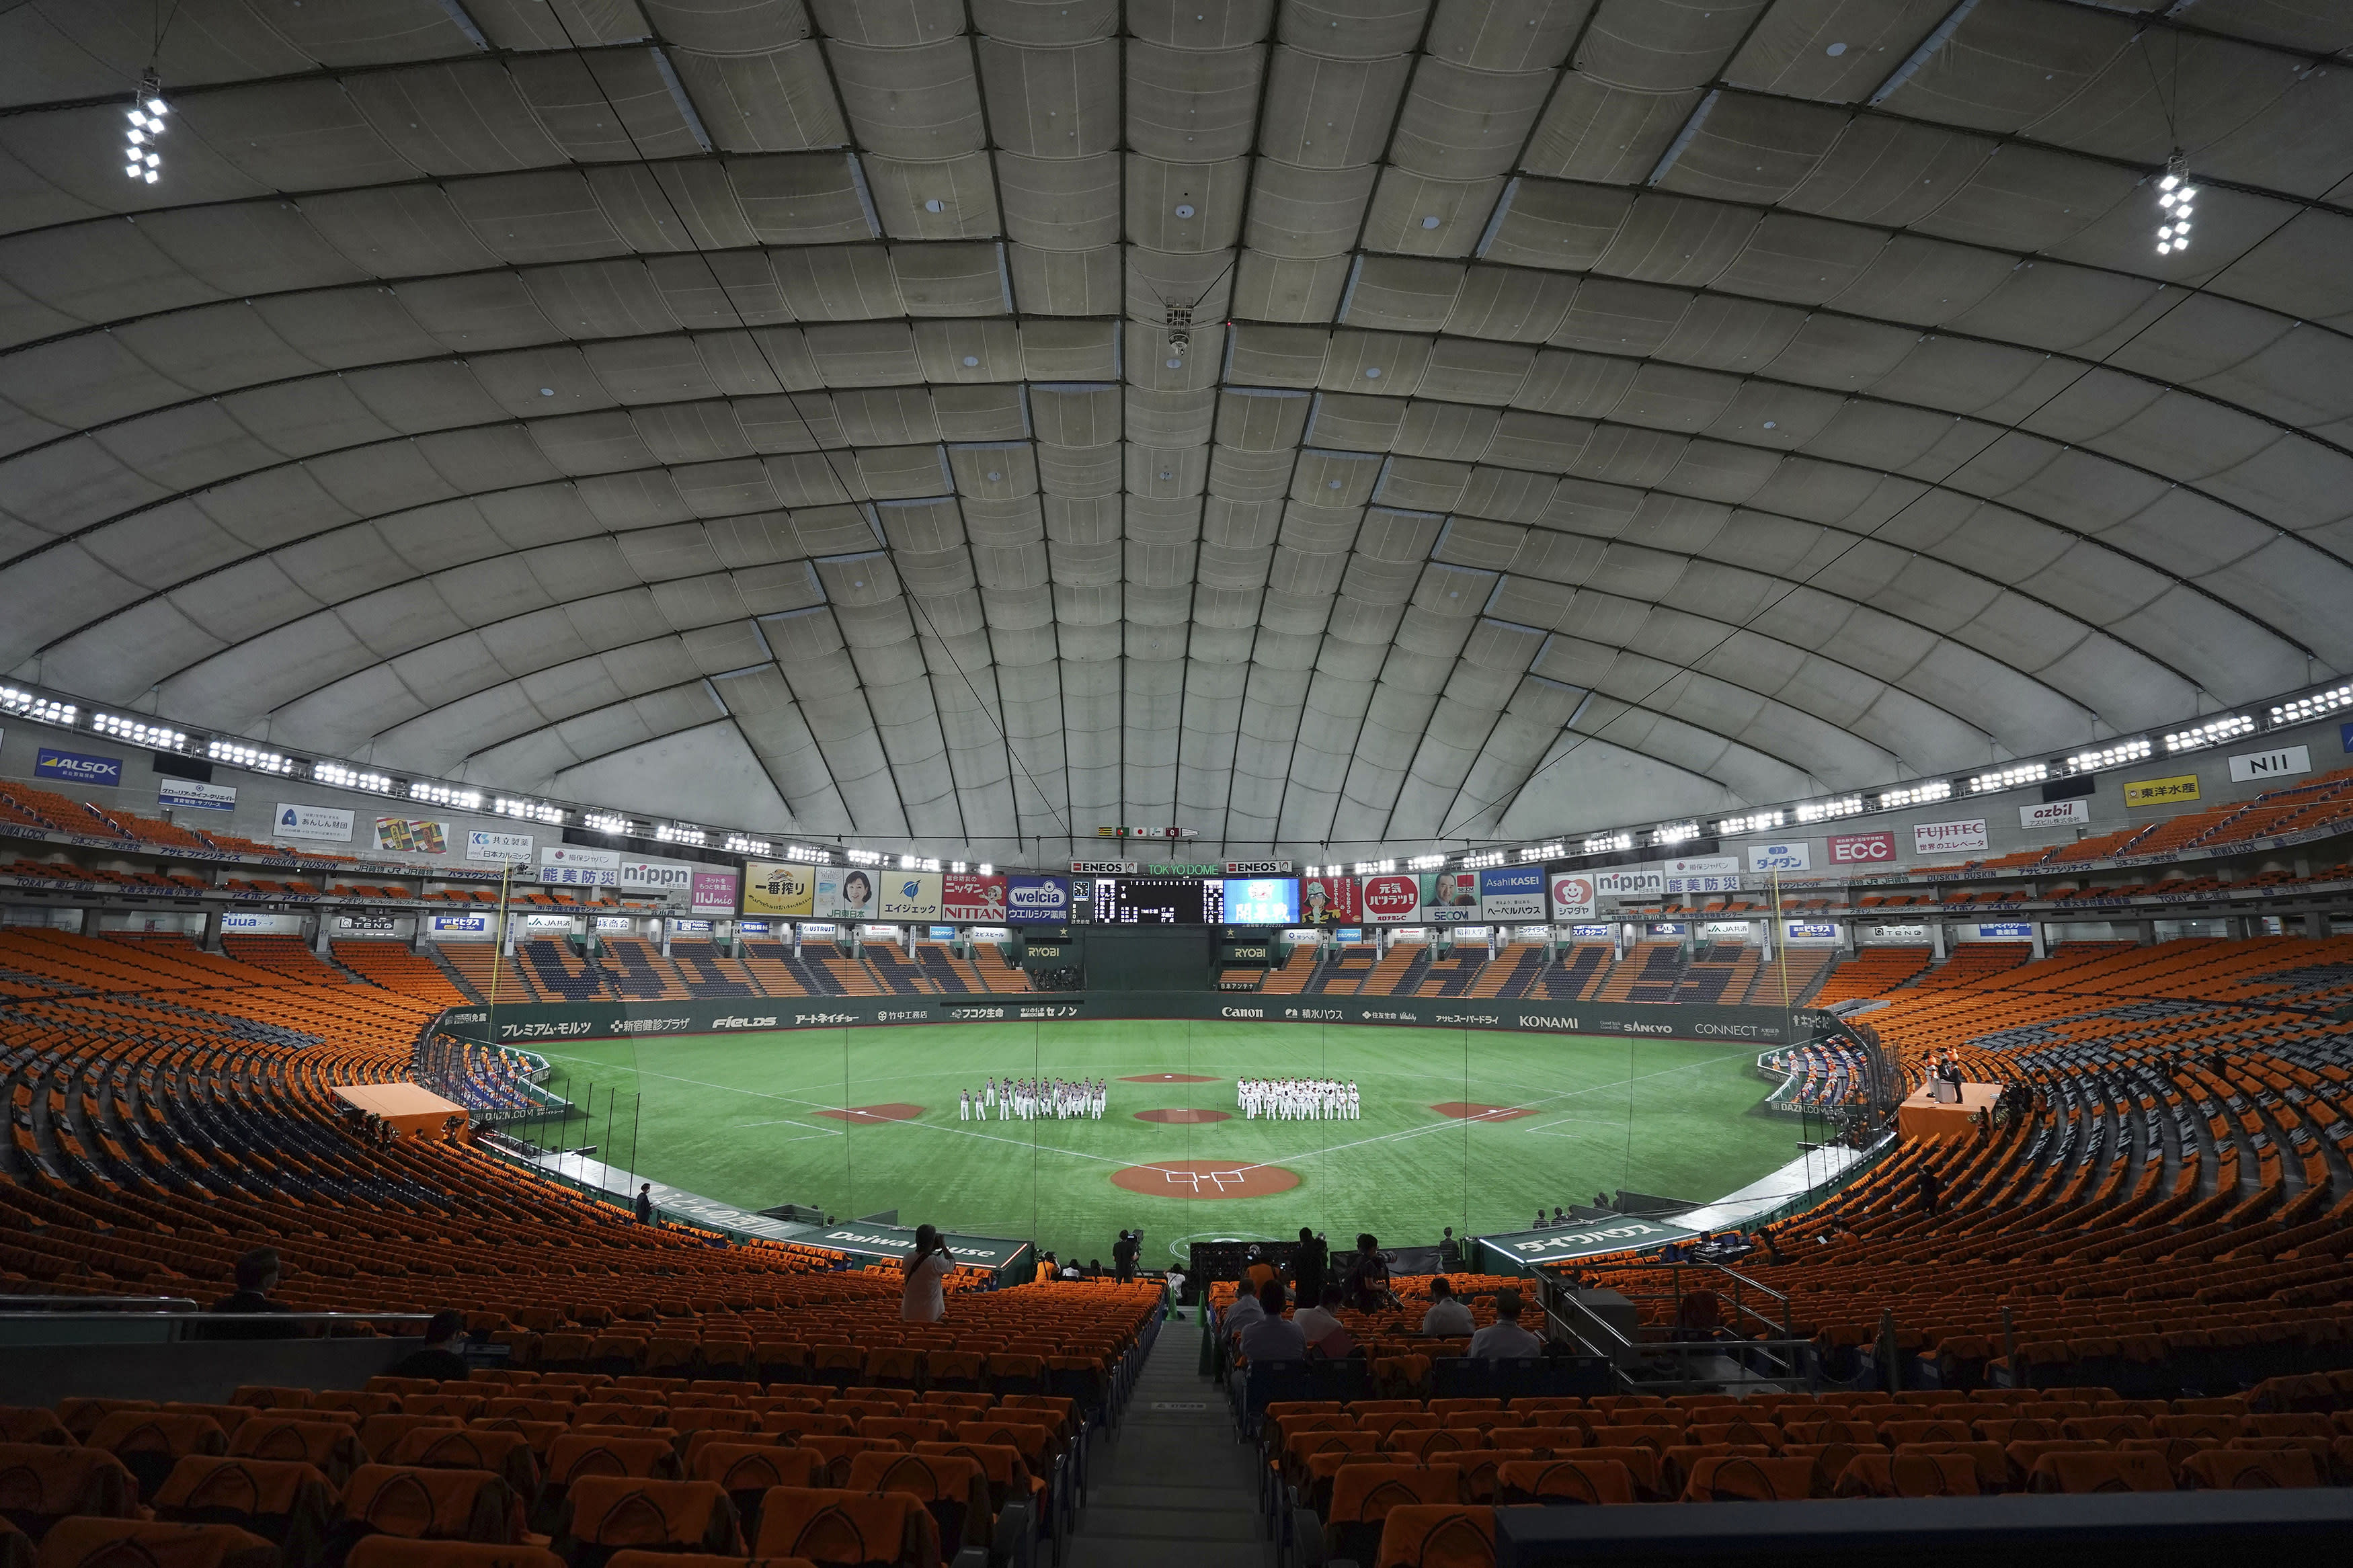 FILE - In this June 19, 2020, file photo, players gather in the empty stands prior to a baseball game between the Yomiuri Giants and the Hanshin Tigers at the Tokyo Dome in Tokyo. Japan's professional baseball and soccer leagues will begin allowing fans this week, the head of both leagues said on Monday, July 6, 2020. (AP Photo/Eugene Hoshiko, File)